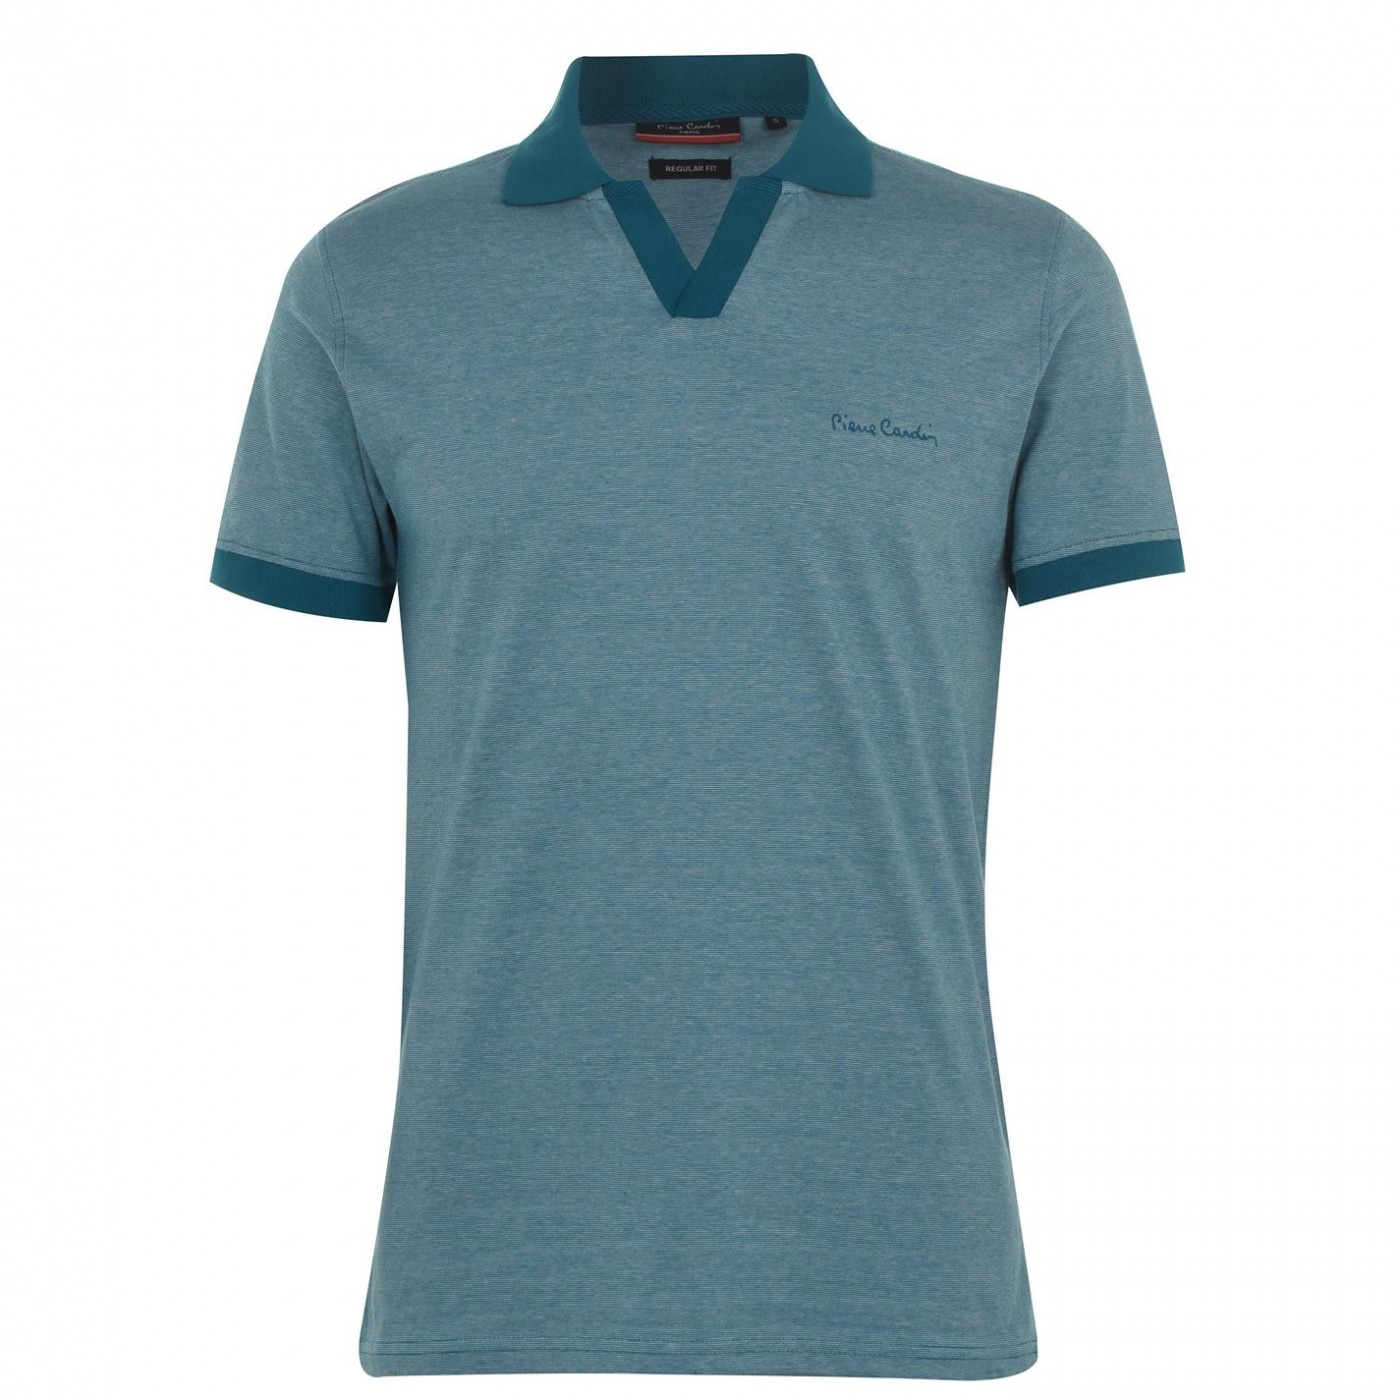 Pierre Cardin Resort Polo Shirt Mens